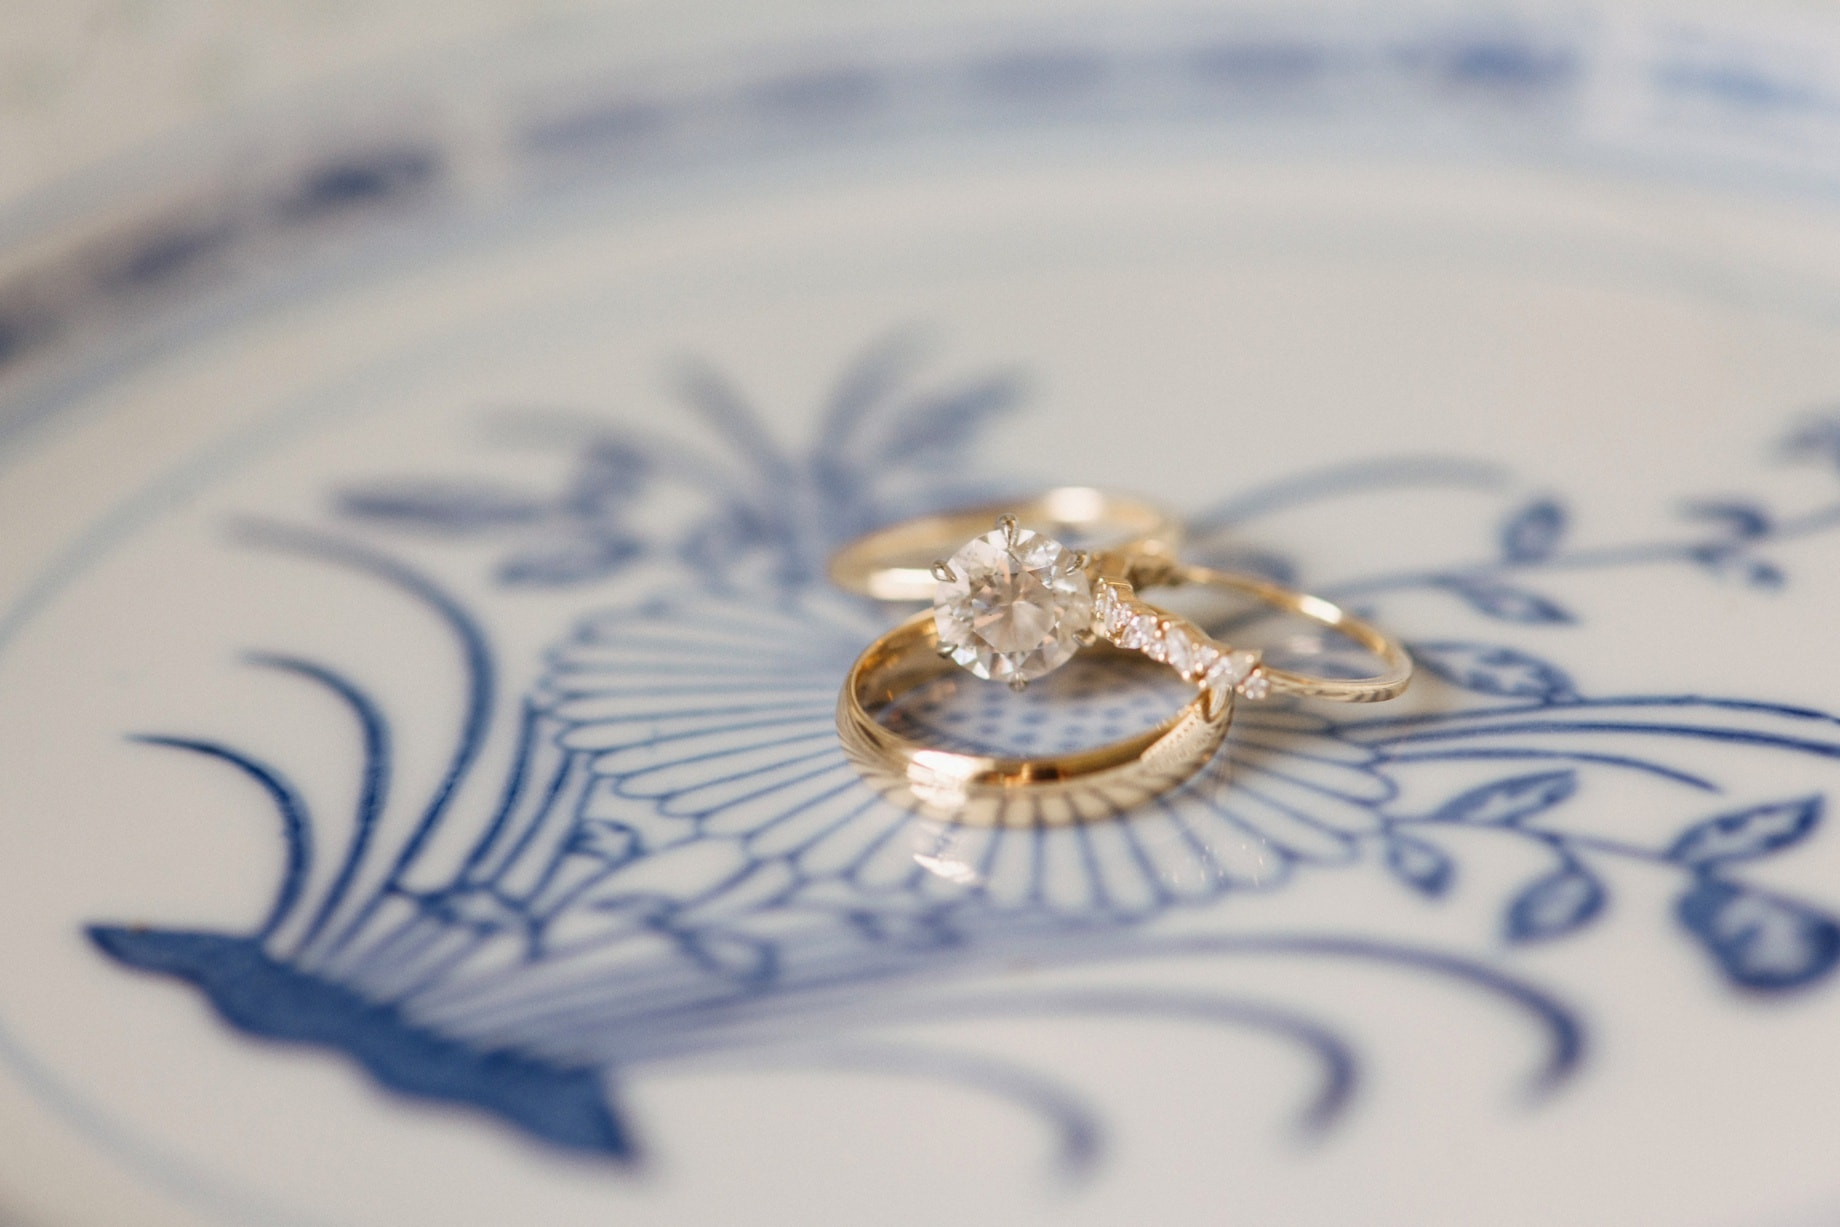 a detail shot of rings on a blue and white plate